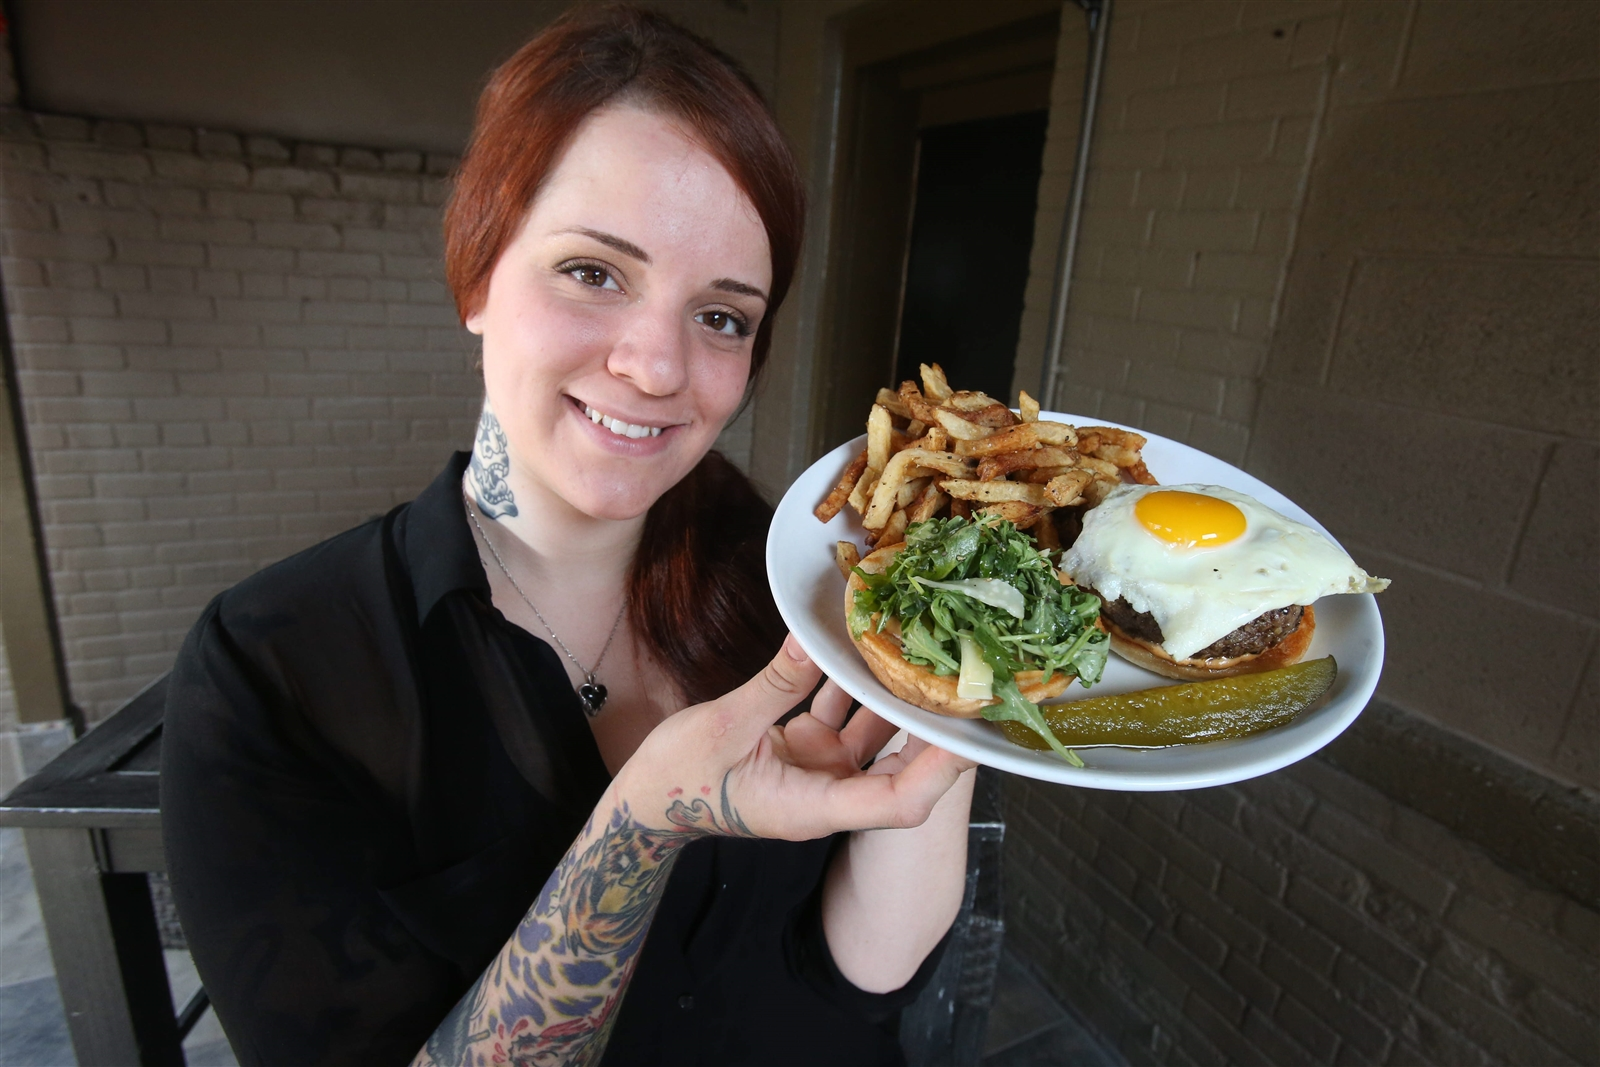 Duke's Bohemian Grove Bar, 253 Allen St., Buffalo (240-9359). This is the Arch Duke of Allentown, a truffled Angus burger with mushrooms, fried egg, and arugula. Do not miss the fries.